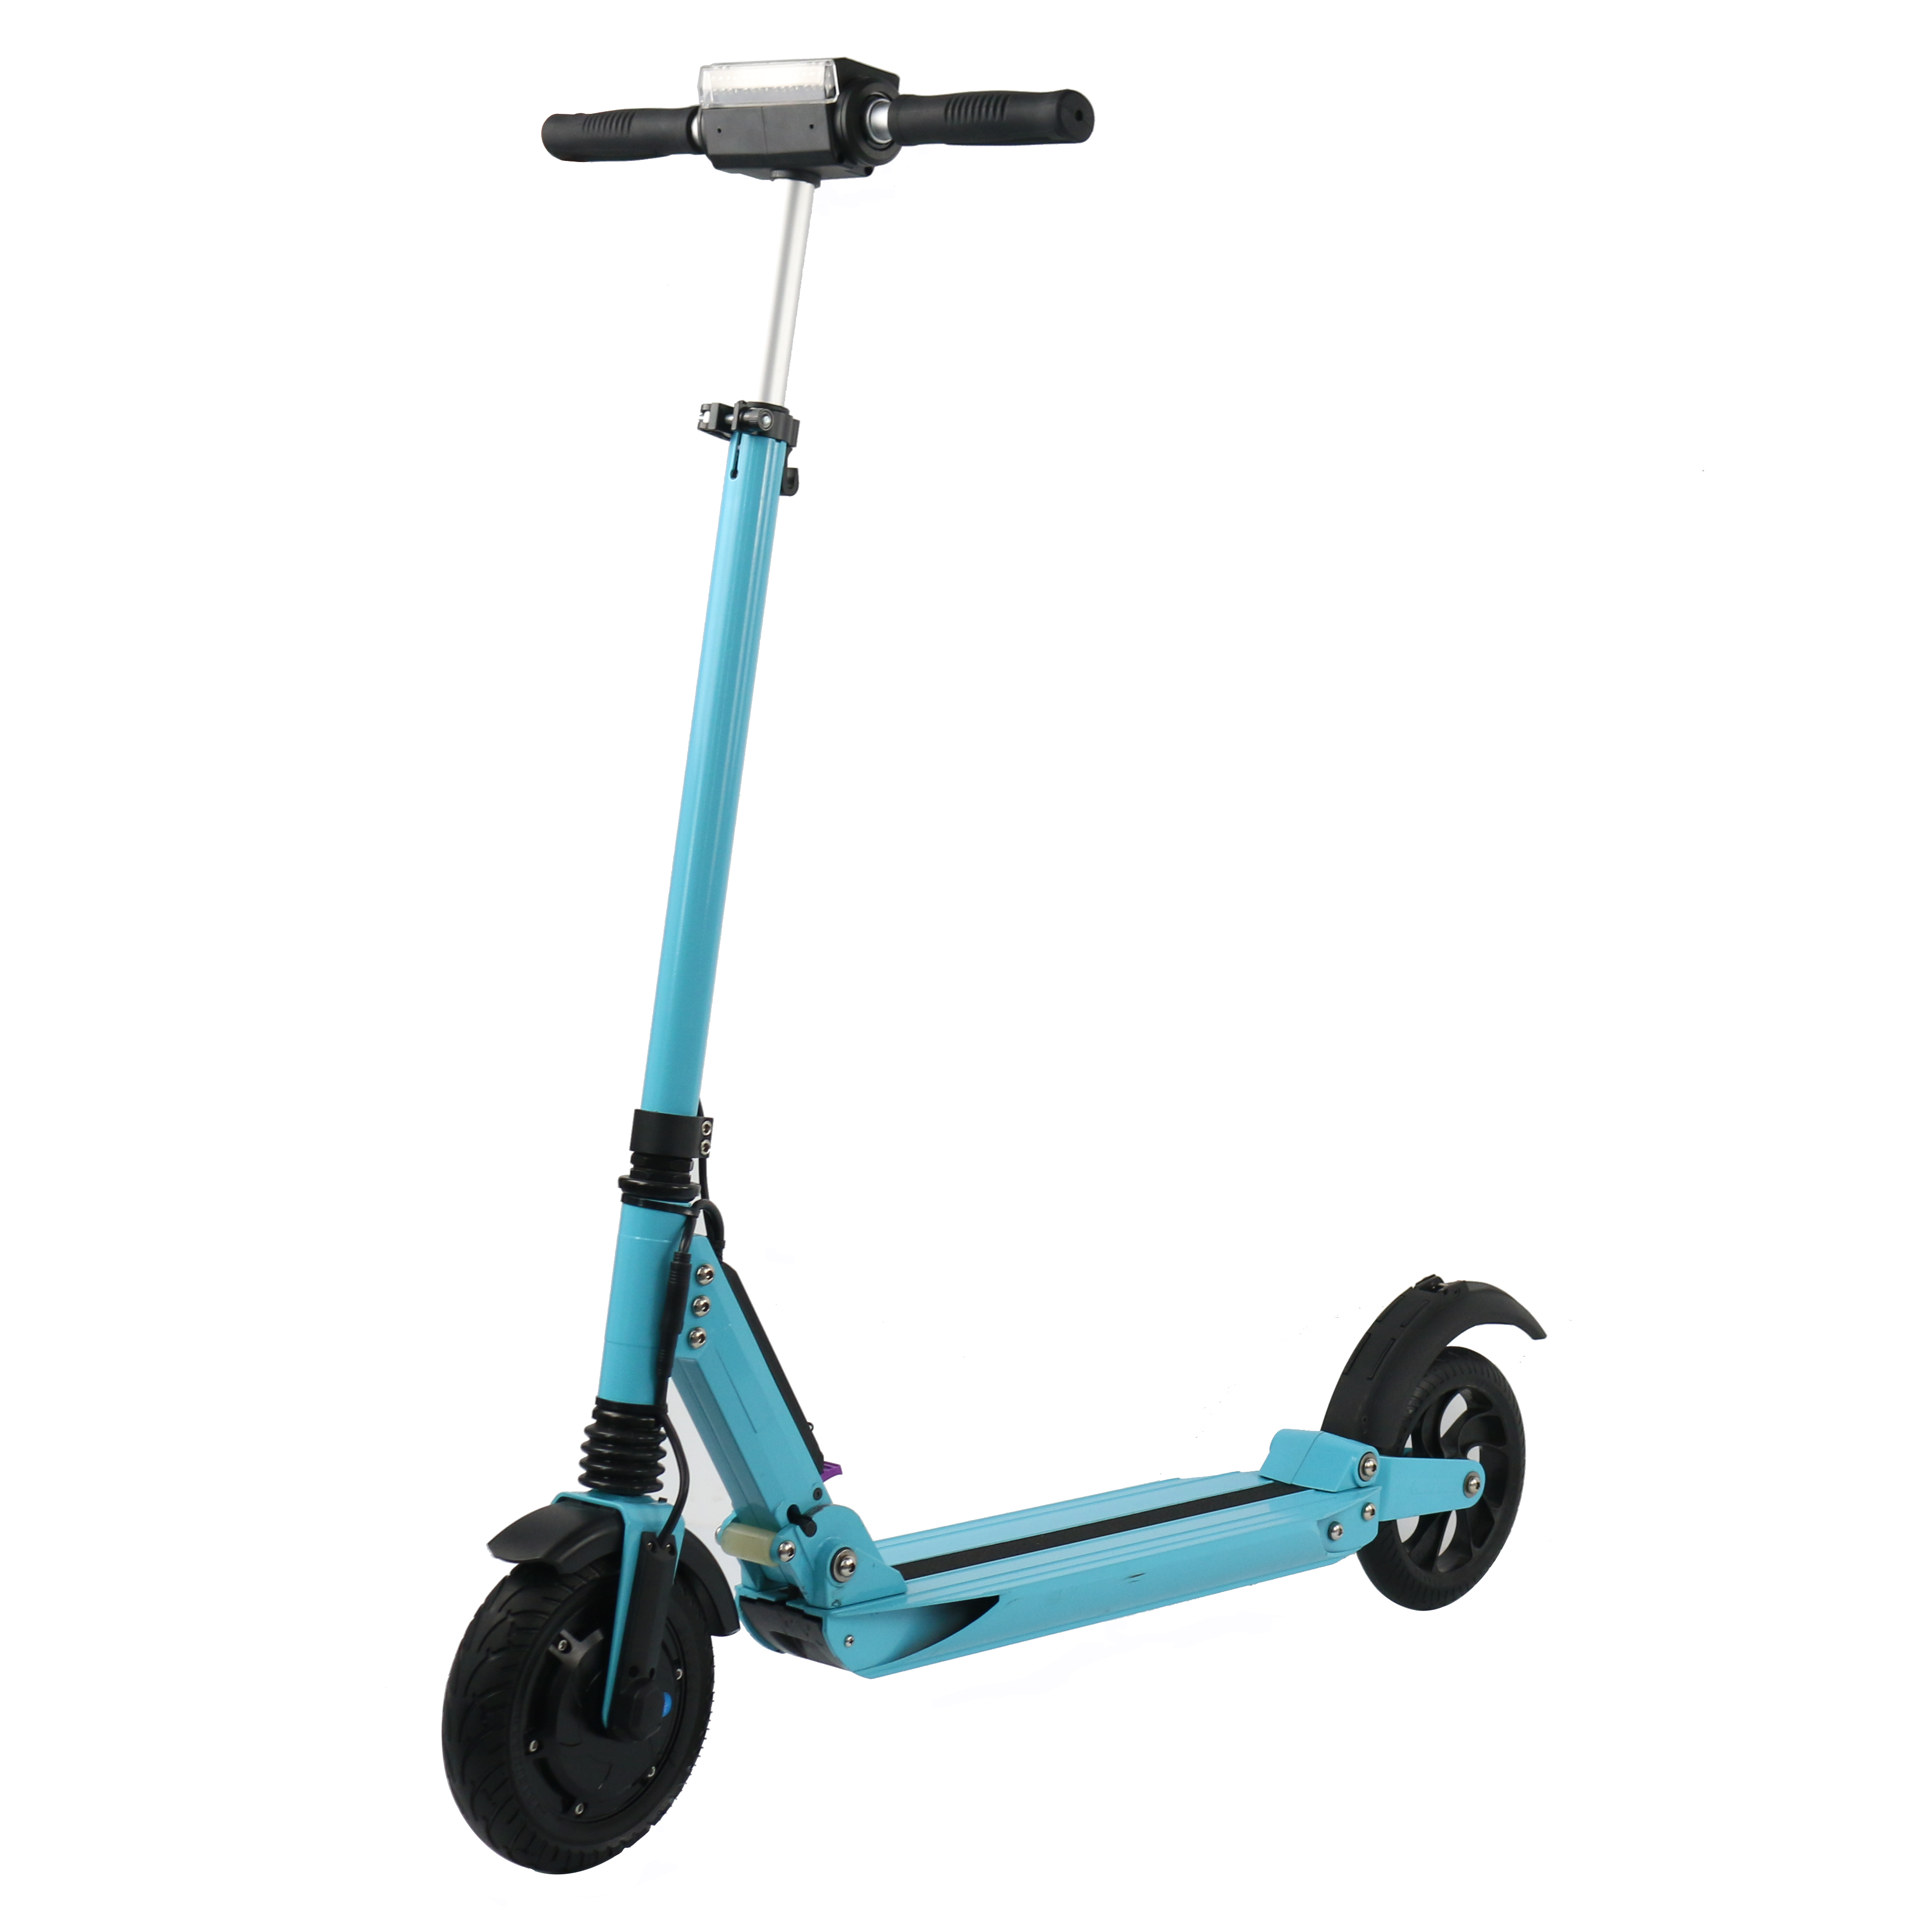 Electric scooter LME-350T